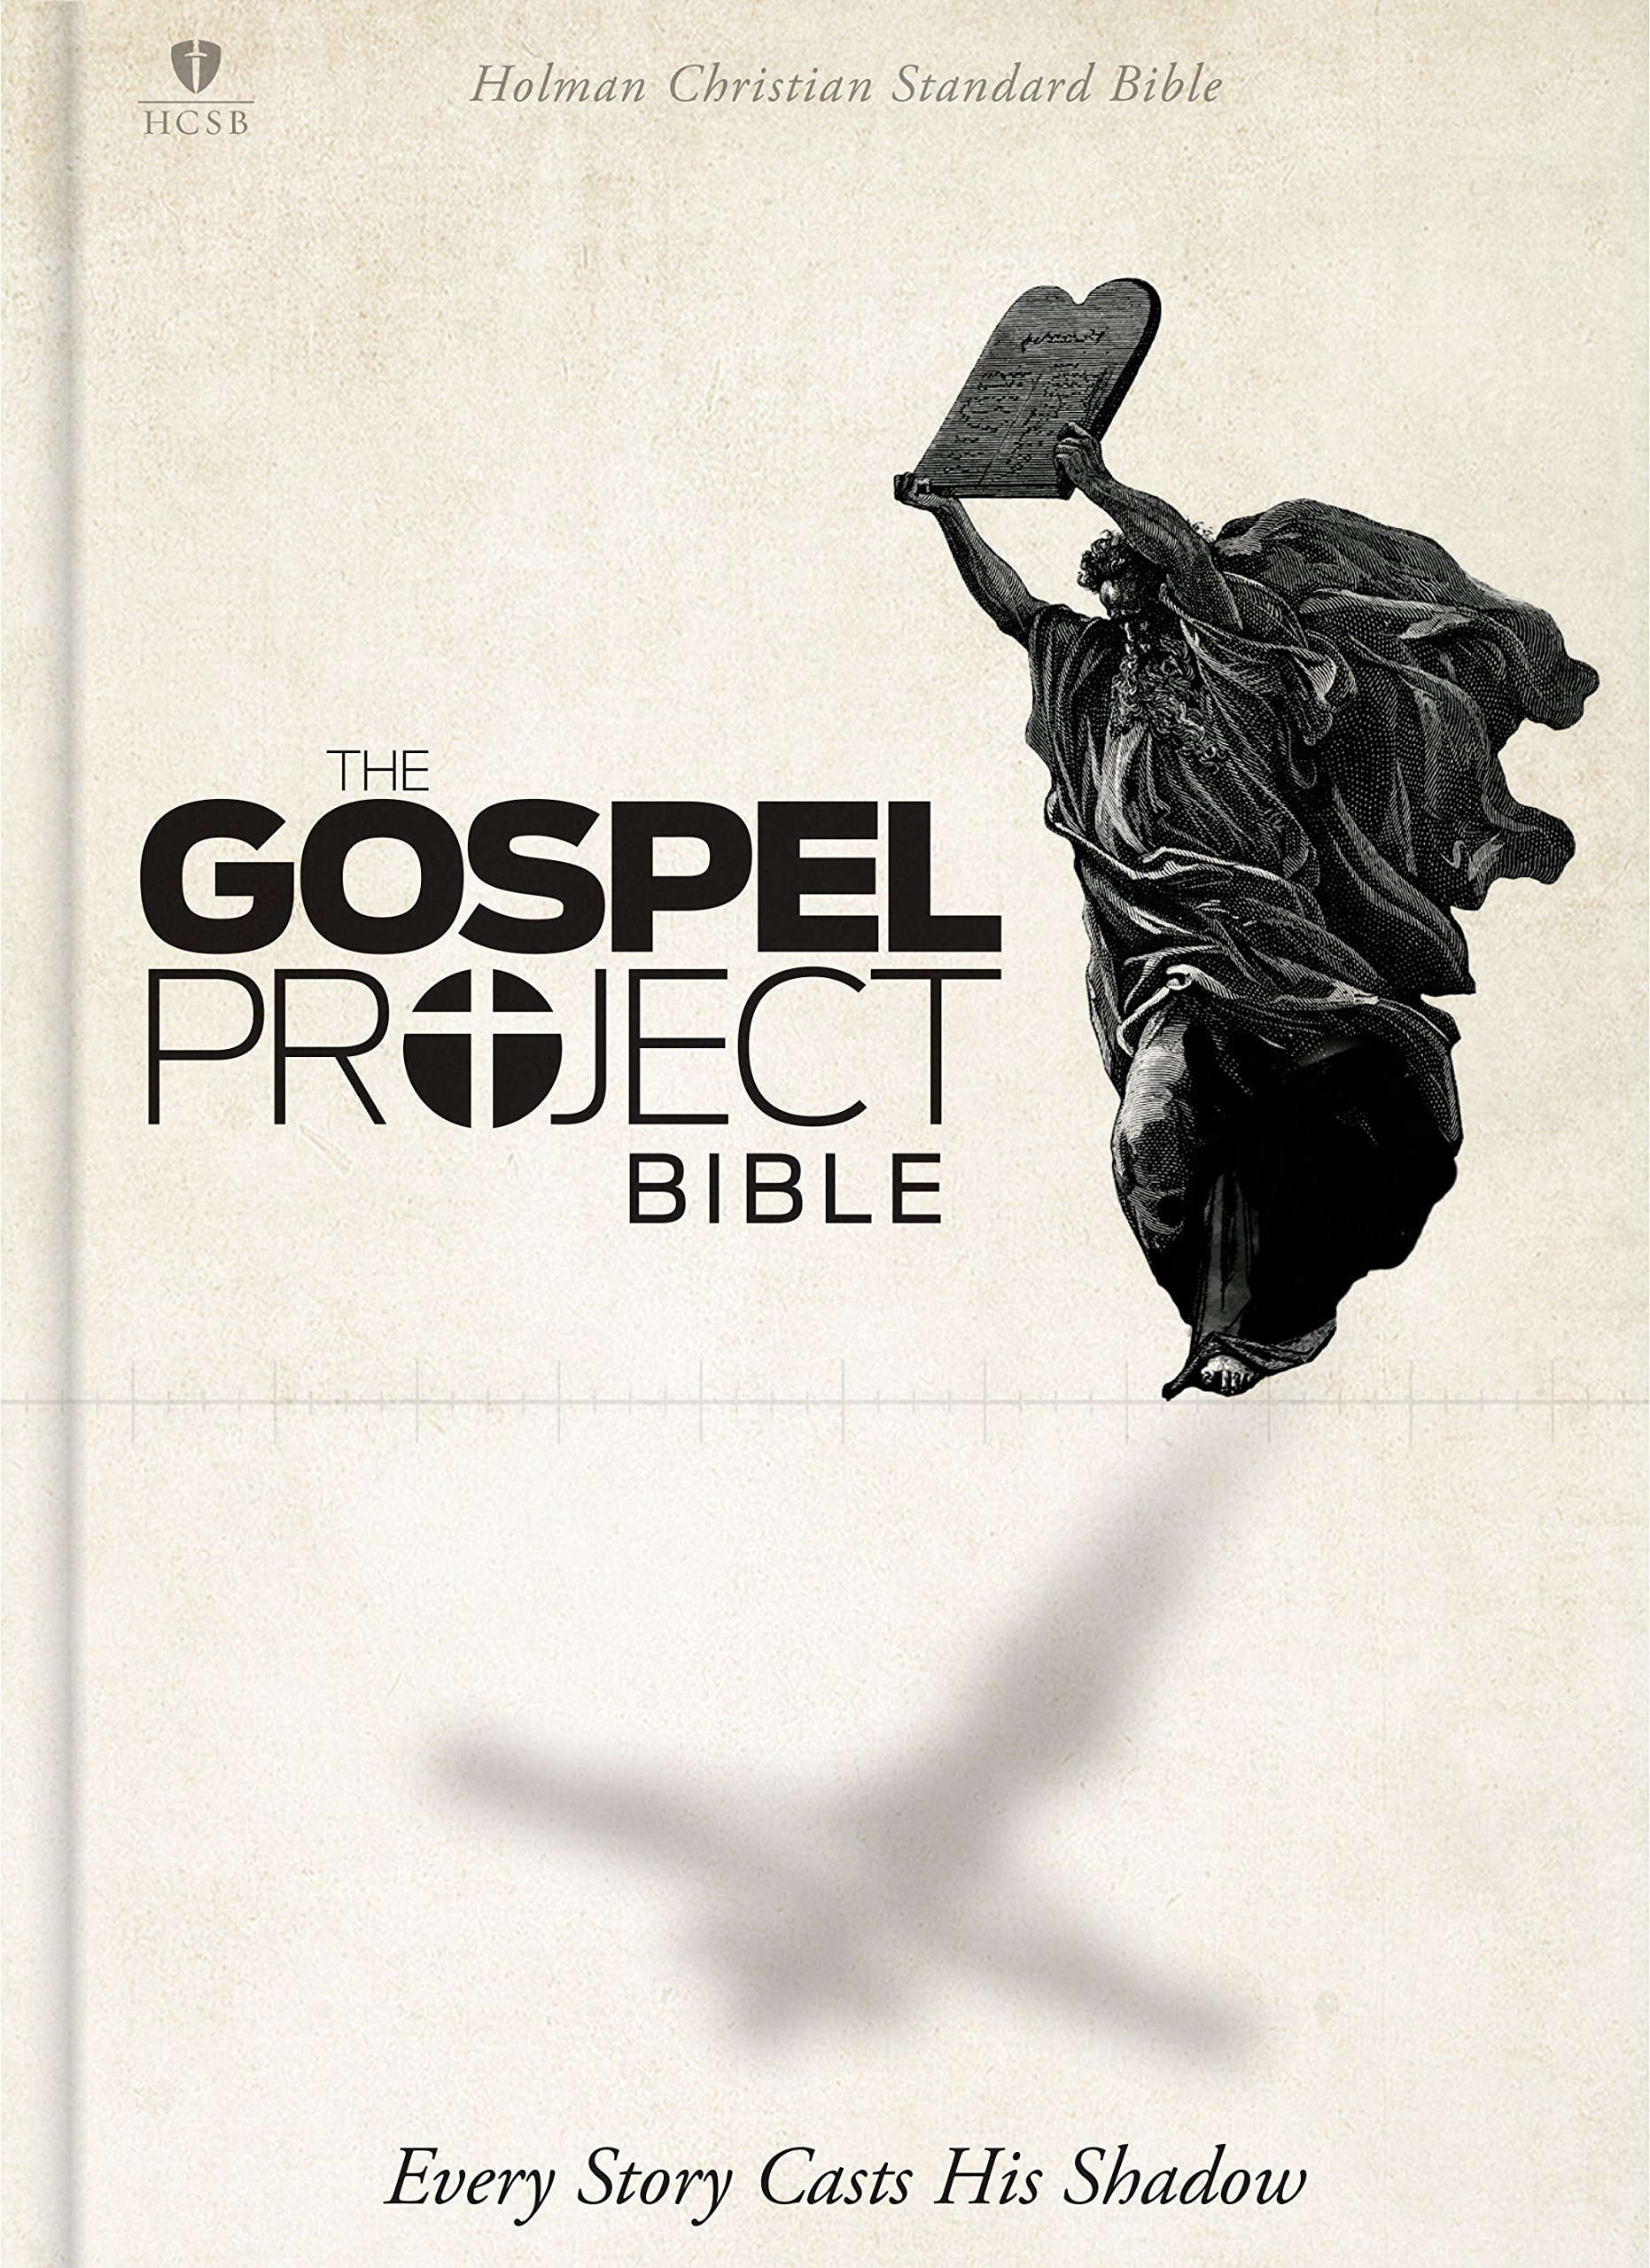 The Gospel Project Bible Hcsb Printed Hardcover Holman Bible Staff 9781433613883 Books